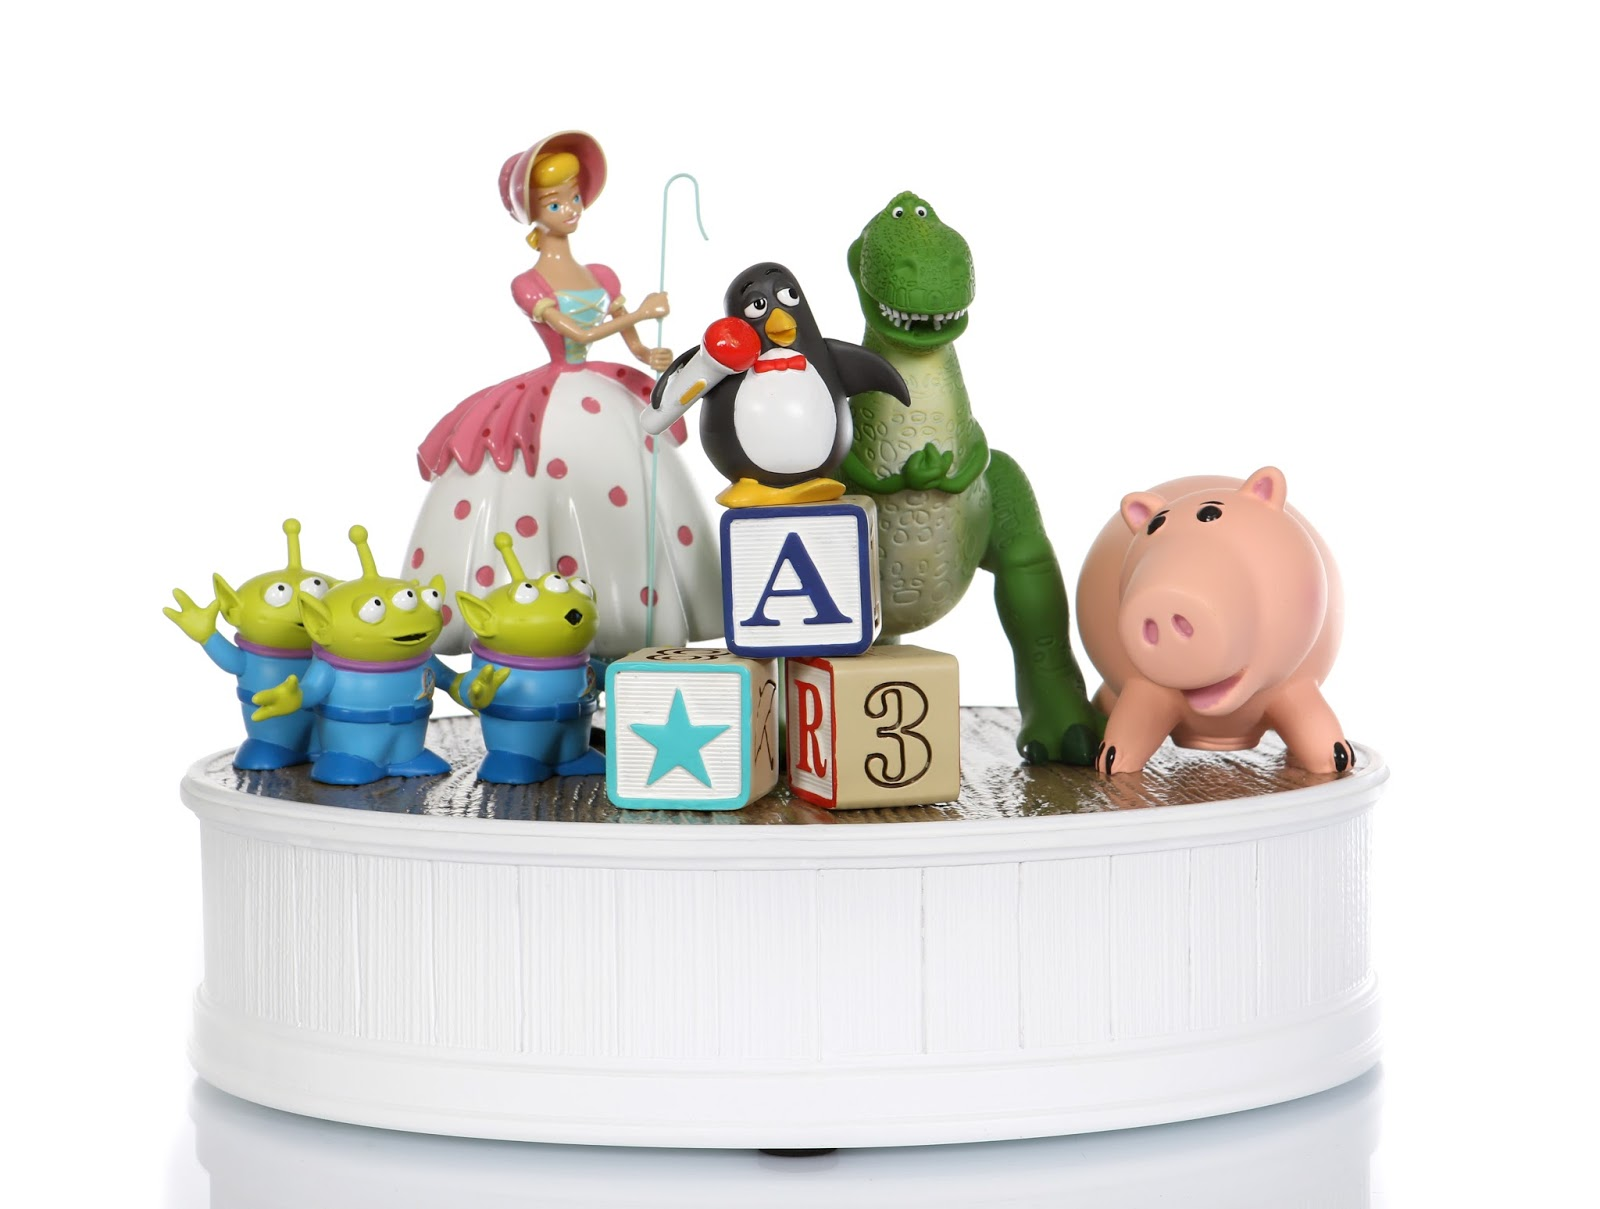 toy story characters figurine sculpture disney park art